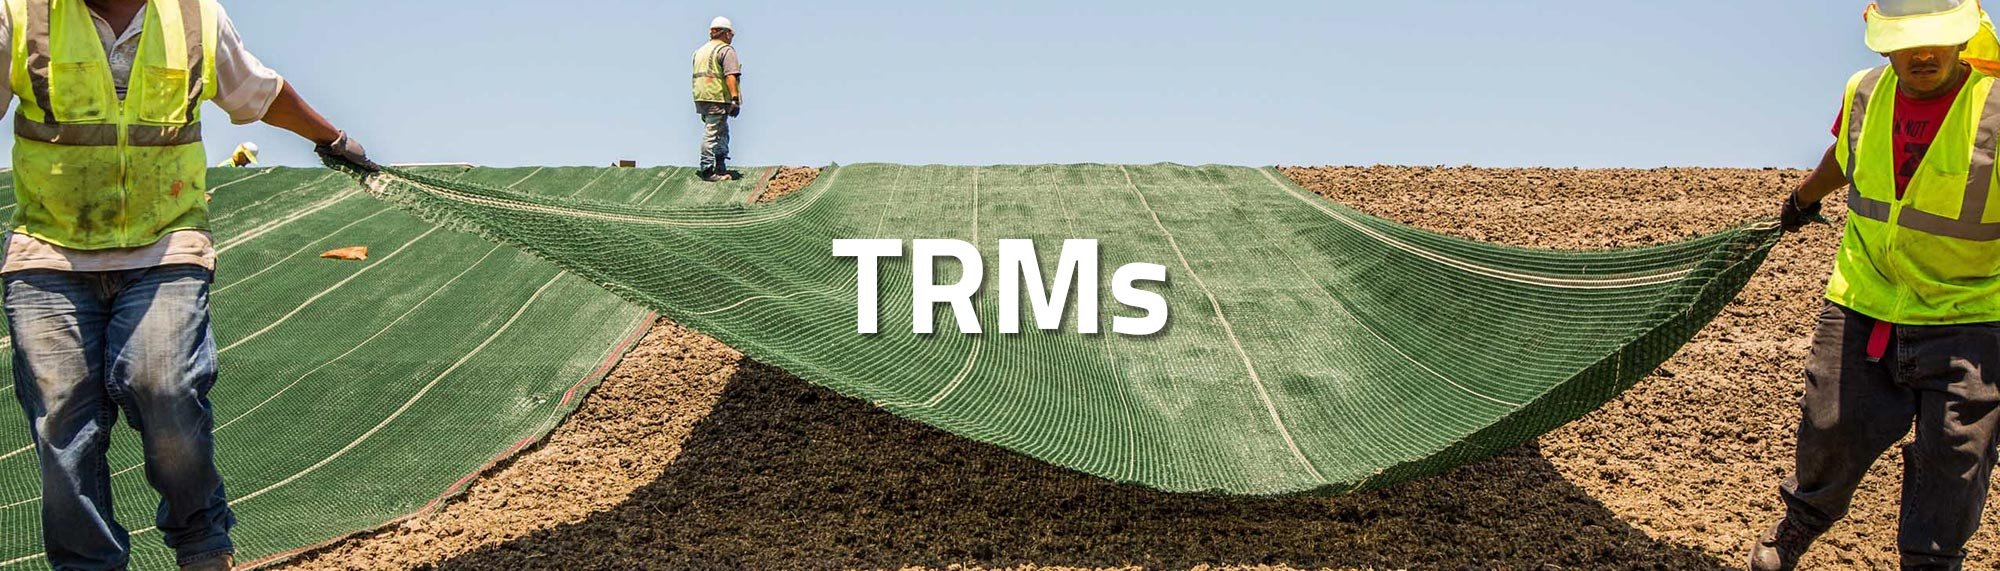 Turf Reinforcement Mats